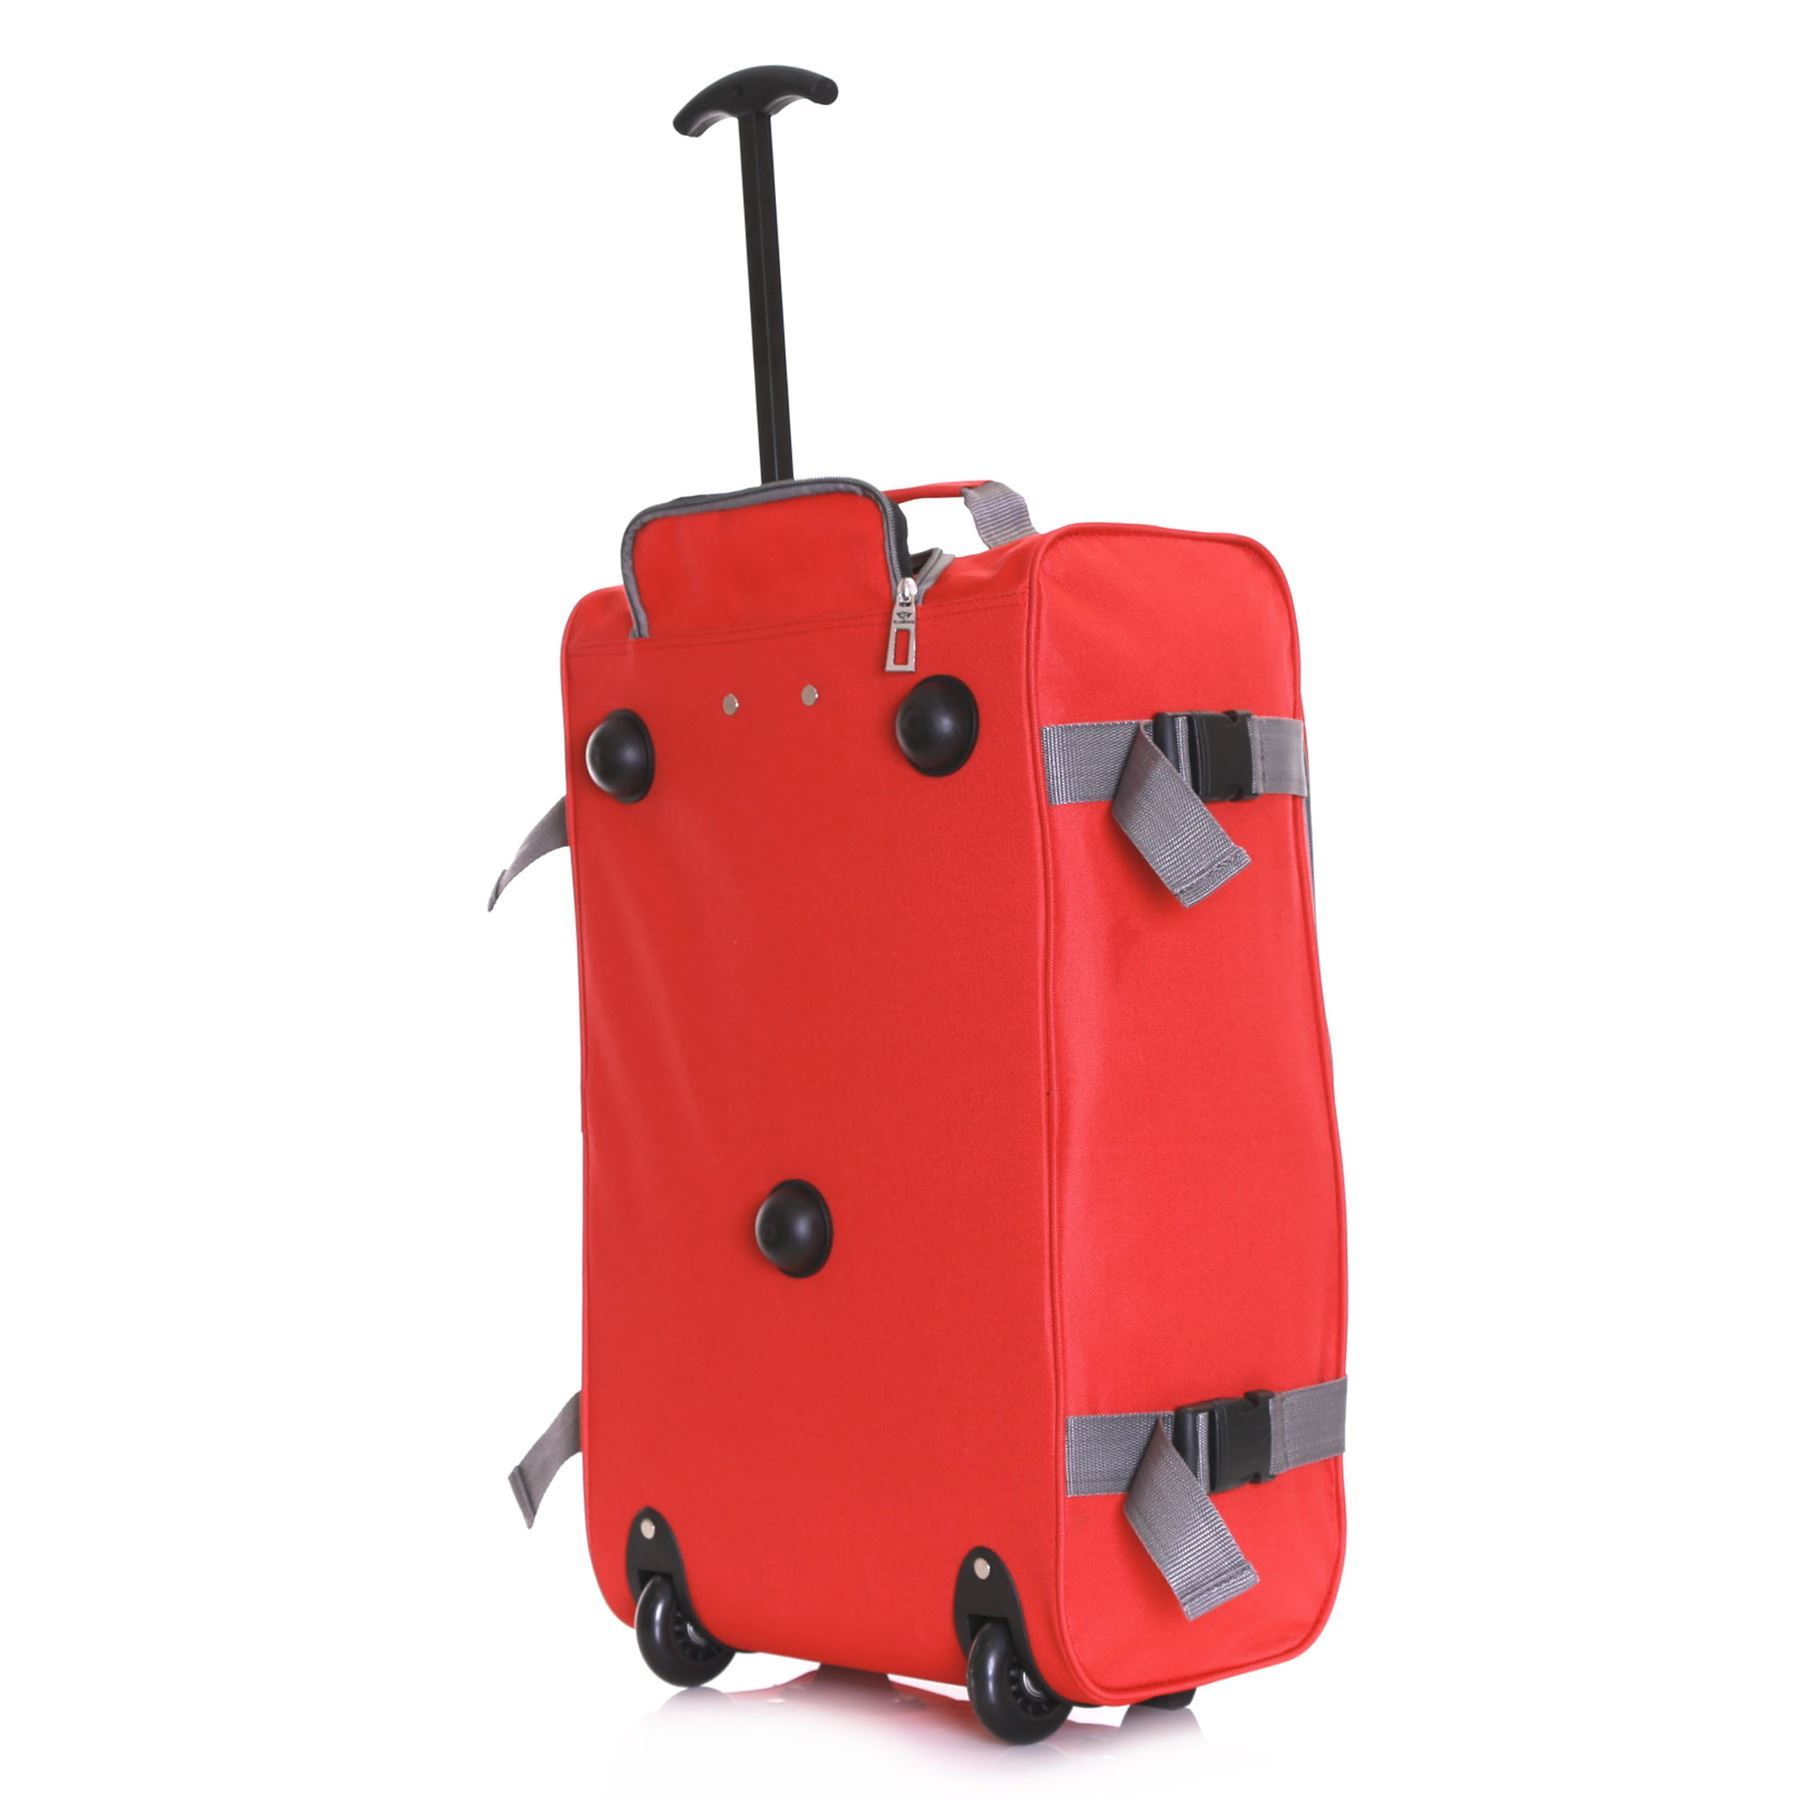 Ryanair-Easyjet-Set-of-2-Cabin-Approved-Hand-Trolley-Suitcases-Luggage-Case-Bags thumbnail 33